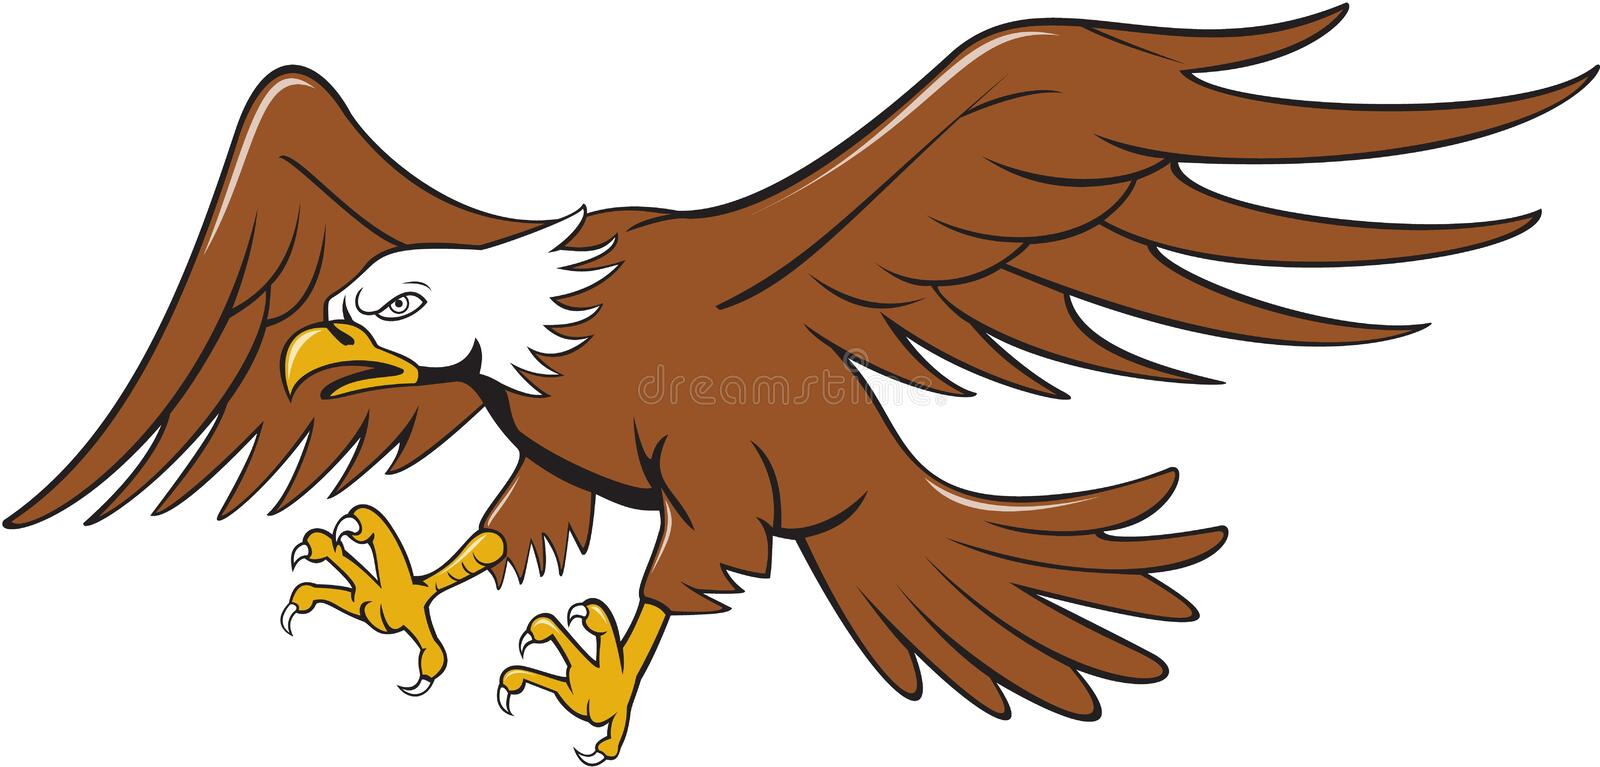 american bald eagle swooping cartoon stock illustration rh dreamstime com eagle cartoon images free cartoon bald eagle images